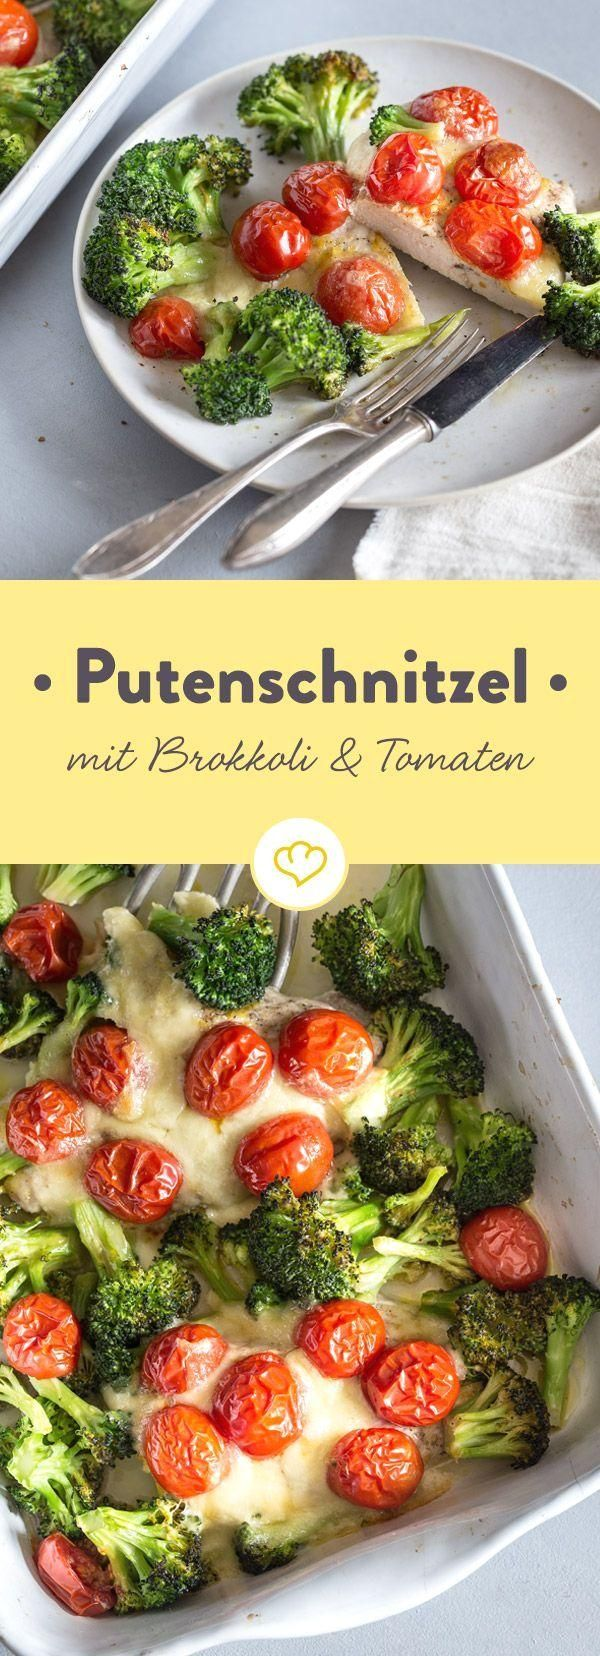 Low-carb turkey schnitzel with broccoli and cherry tomatoes